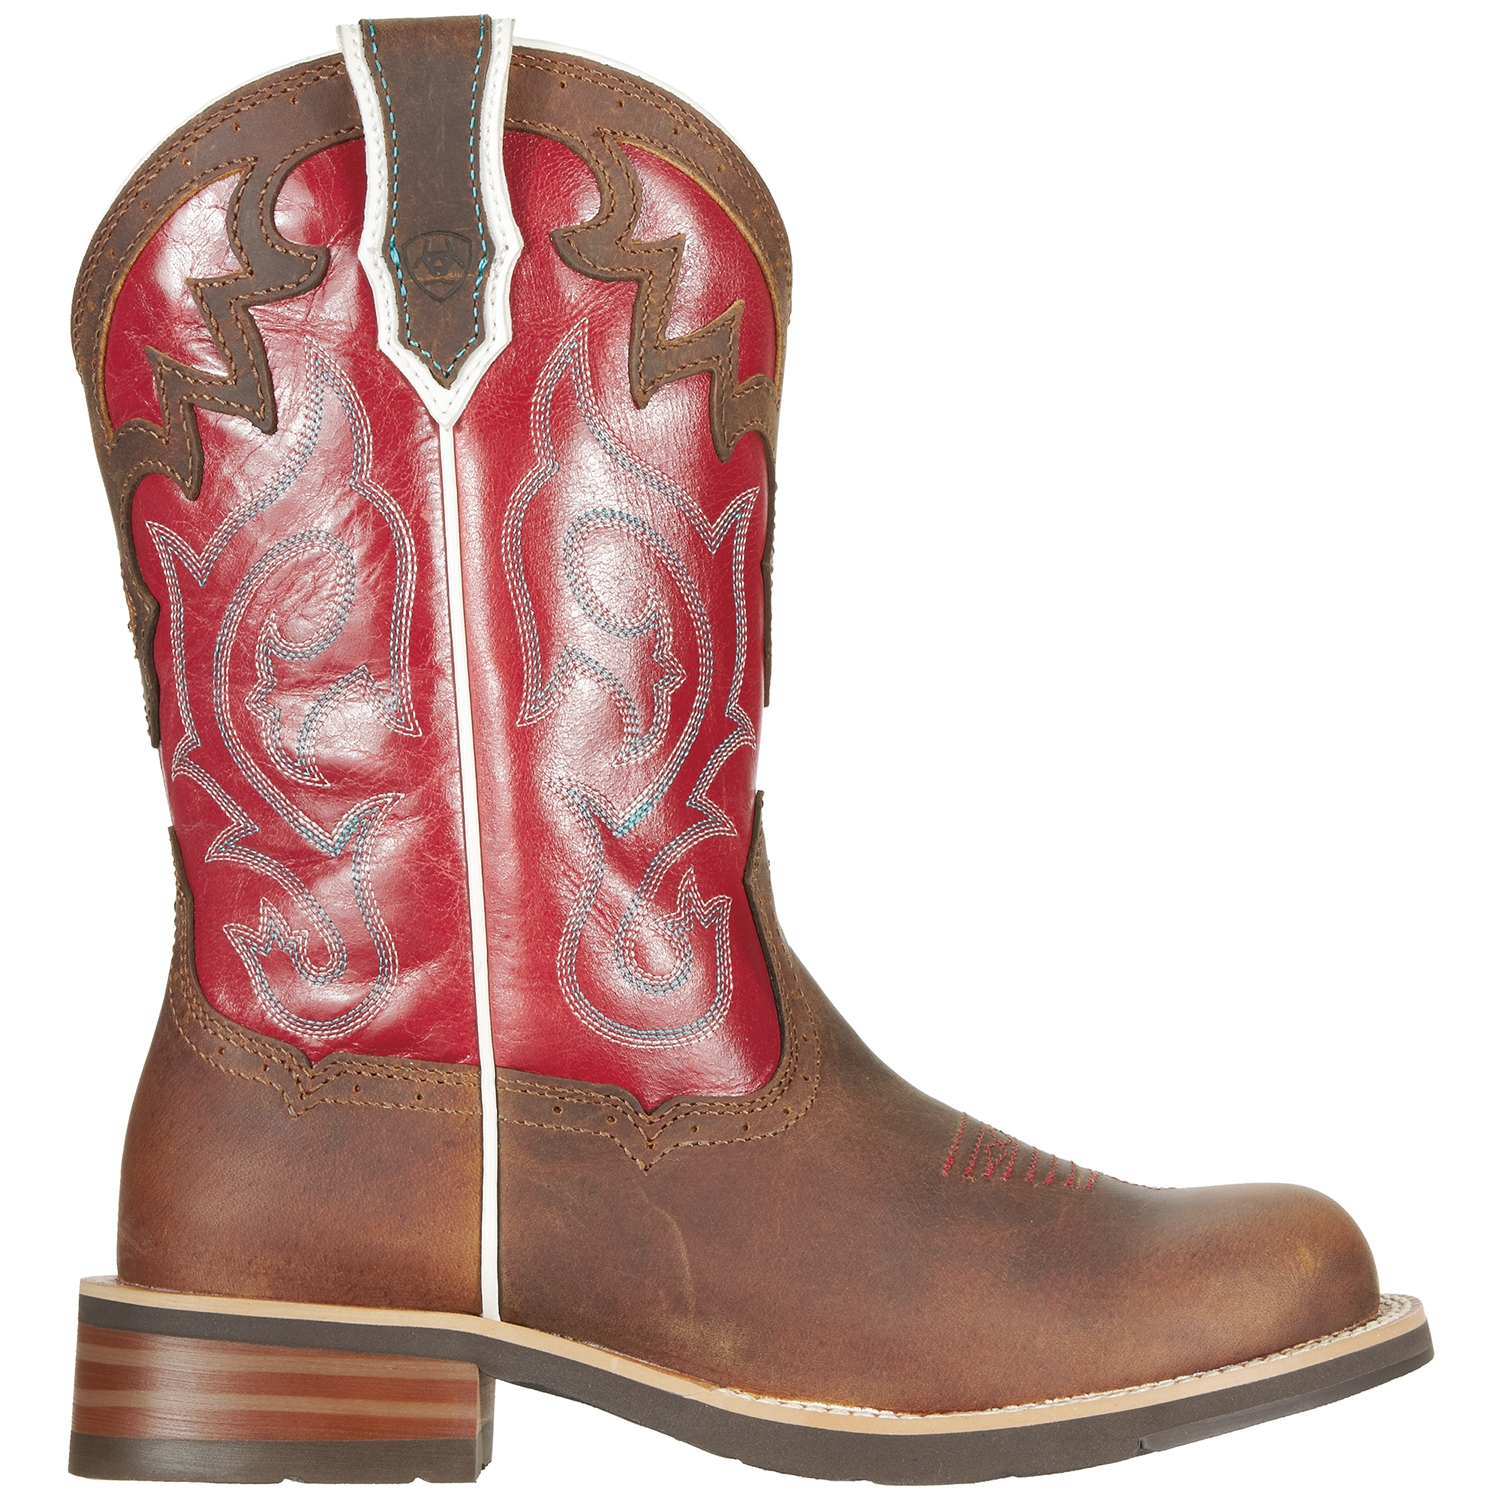 Red Ariat Cowboy Boots khFpkr4Y